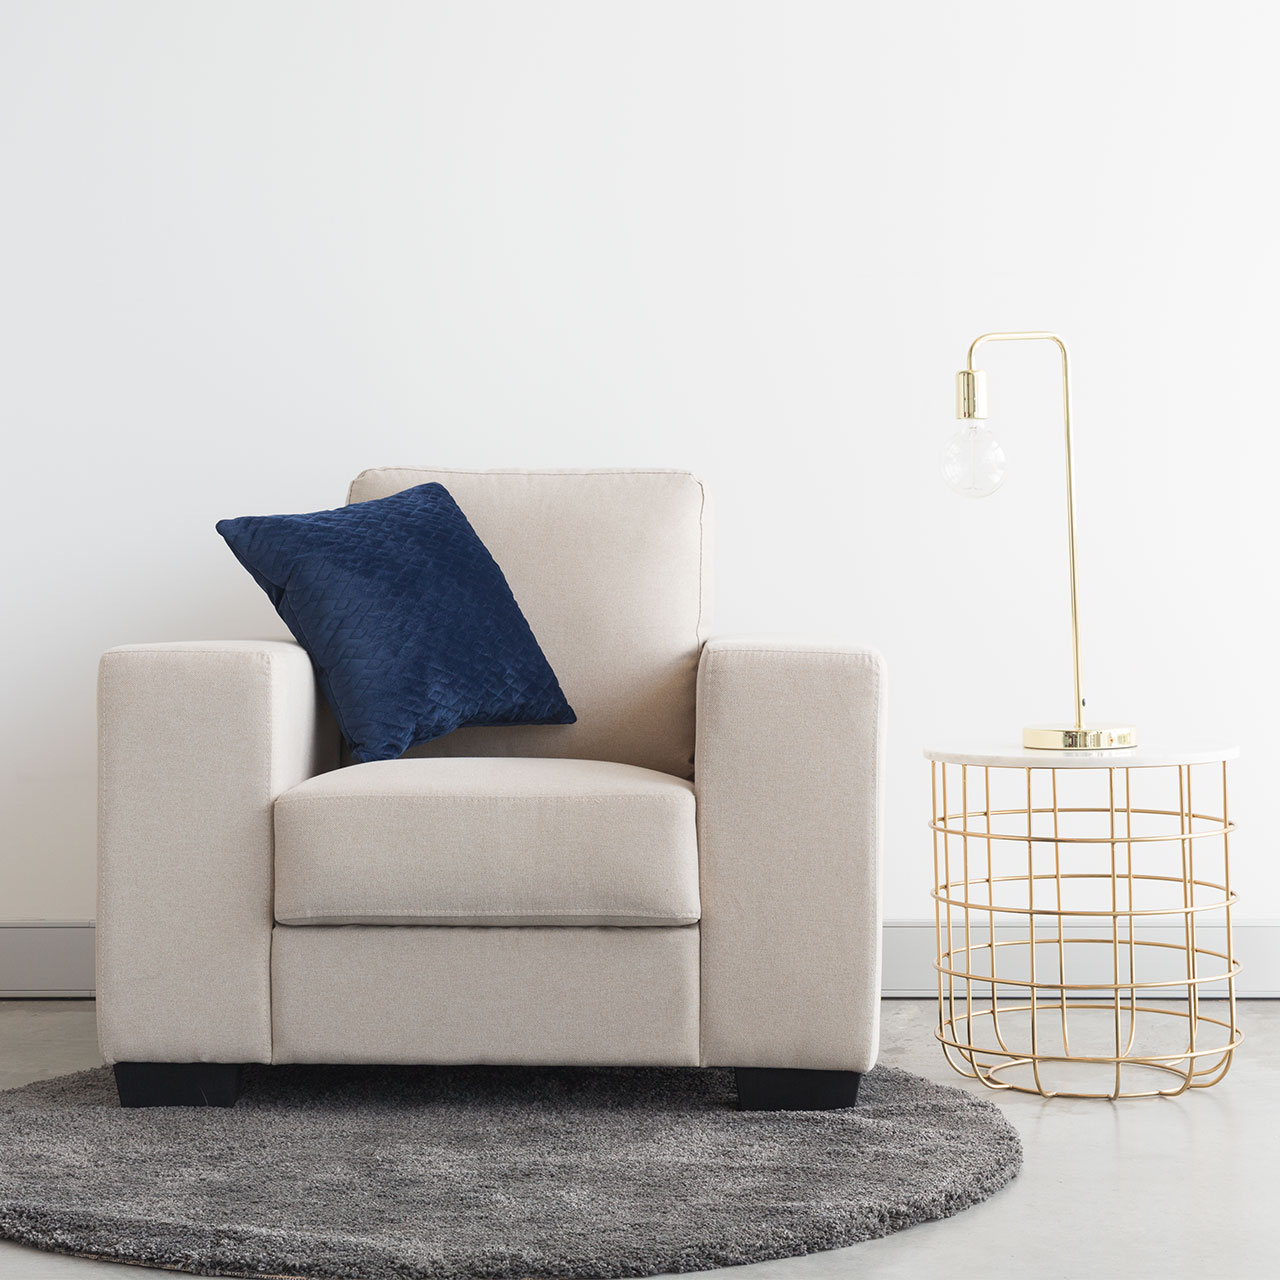 Canningvale Sensazione Sofa Collection